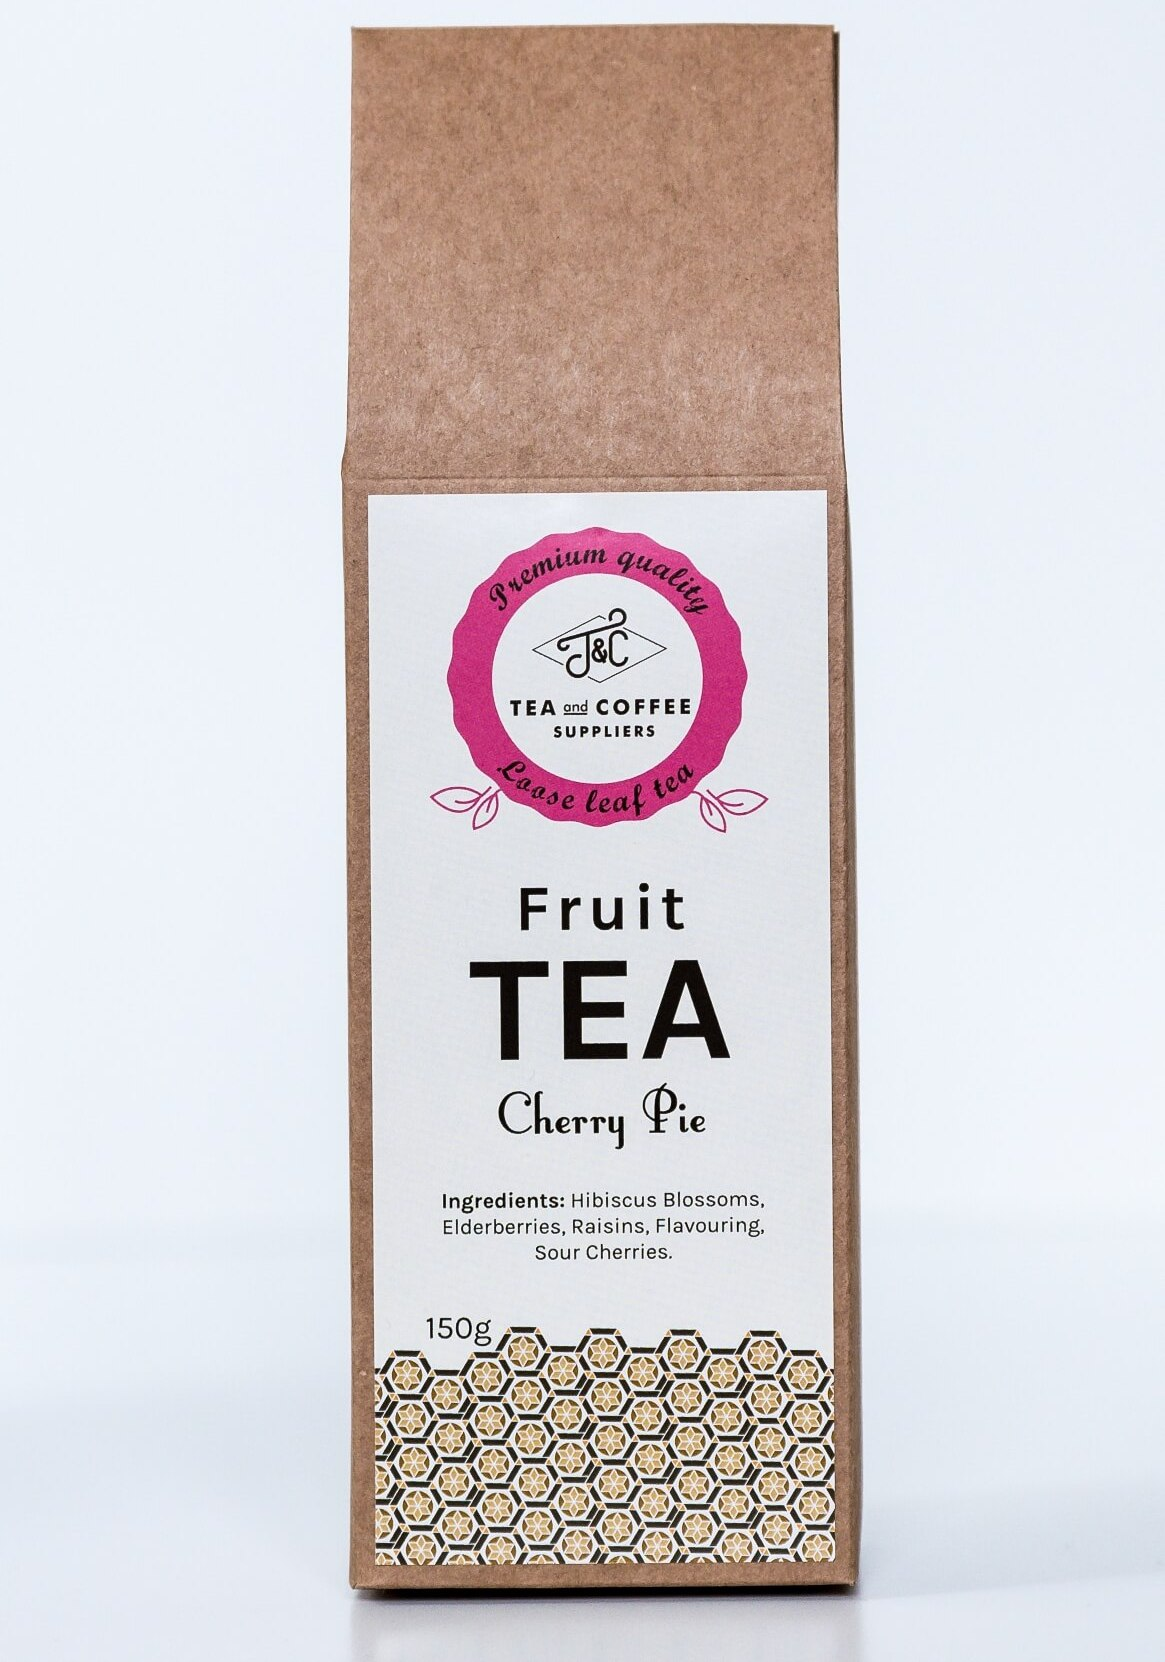 T&C Fruit Tea 'Cherry Pie'